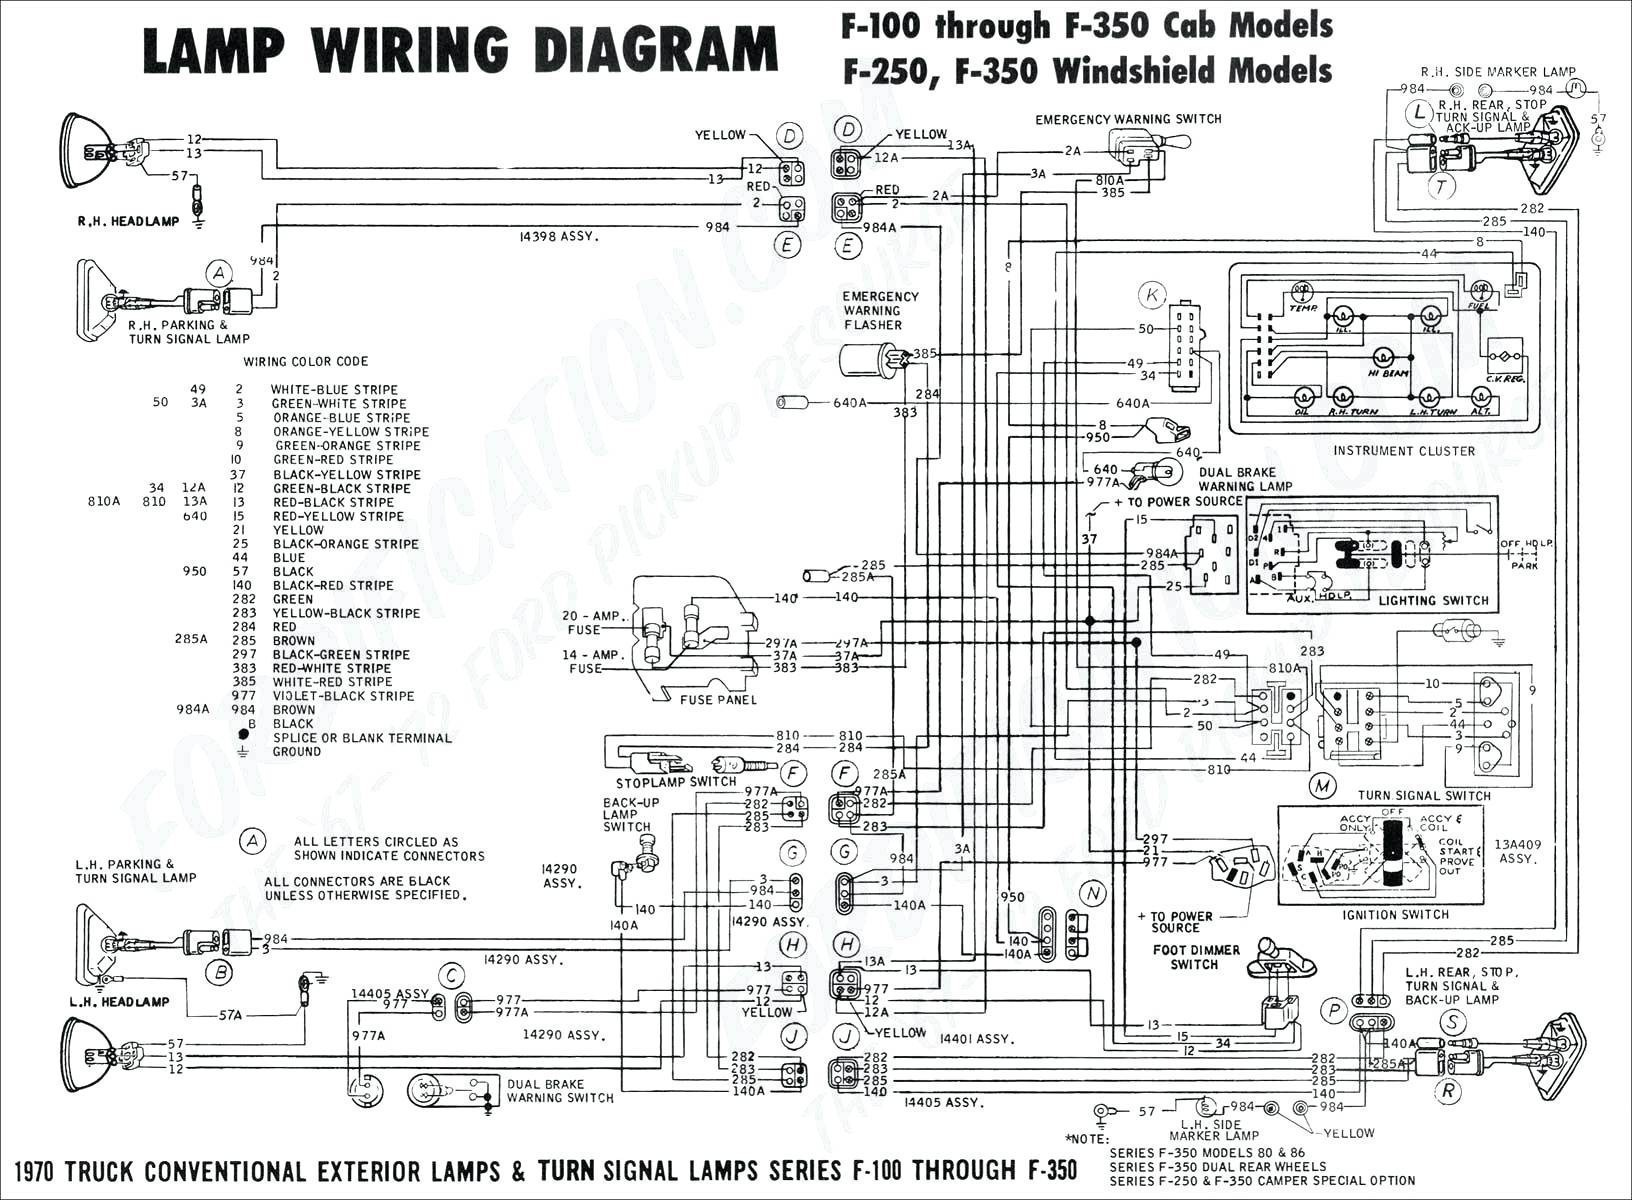 Suzuki Samurai Wiring Harness Bo 2633] 1986 Chevy Truck Wiring Diagram Furthermore Dodge Of Suzuki Samurai Wiring Harness